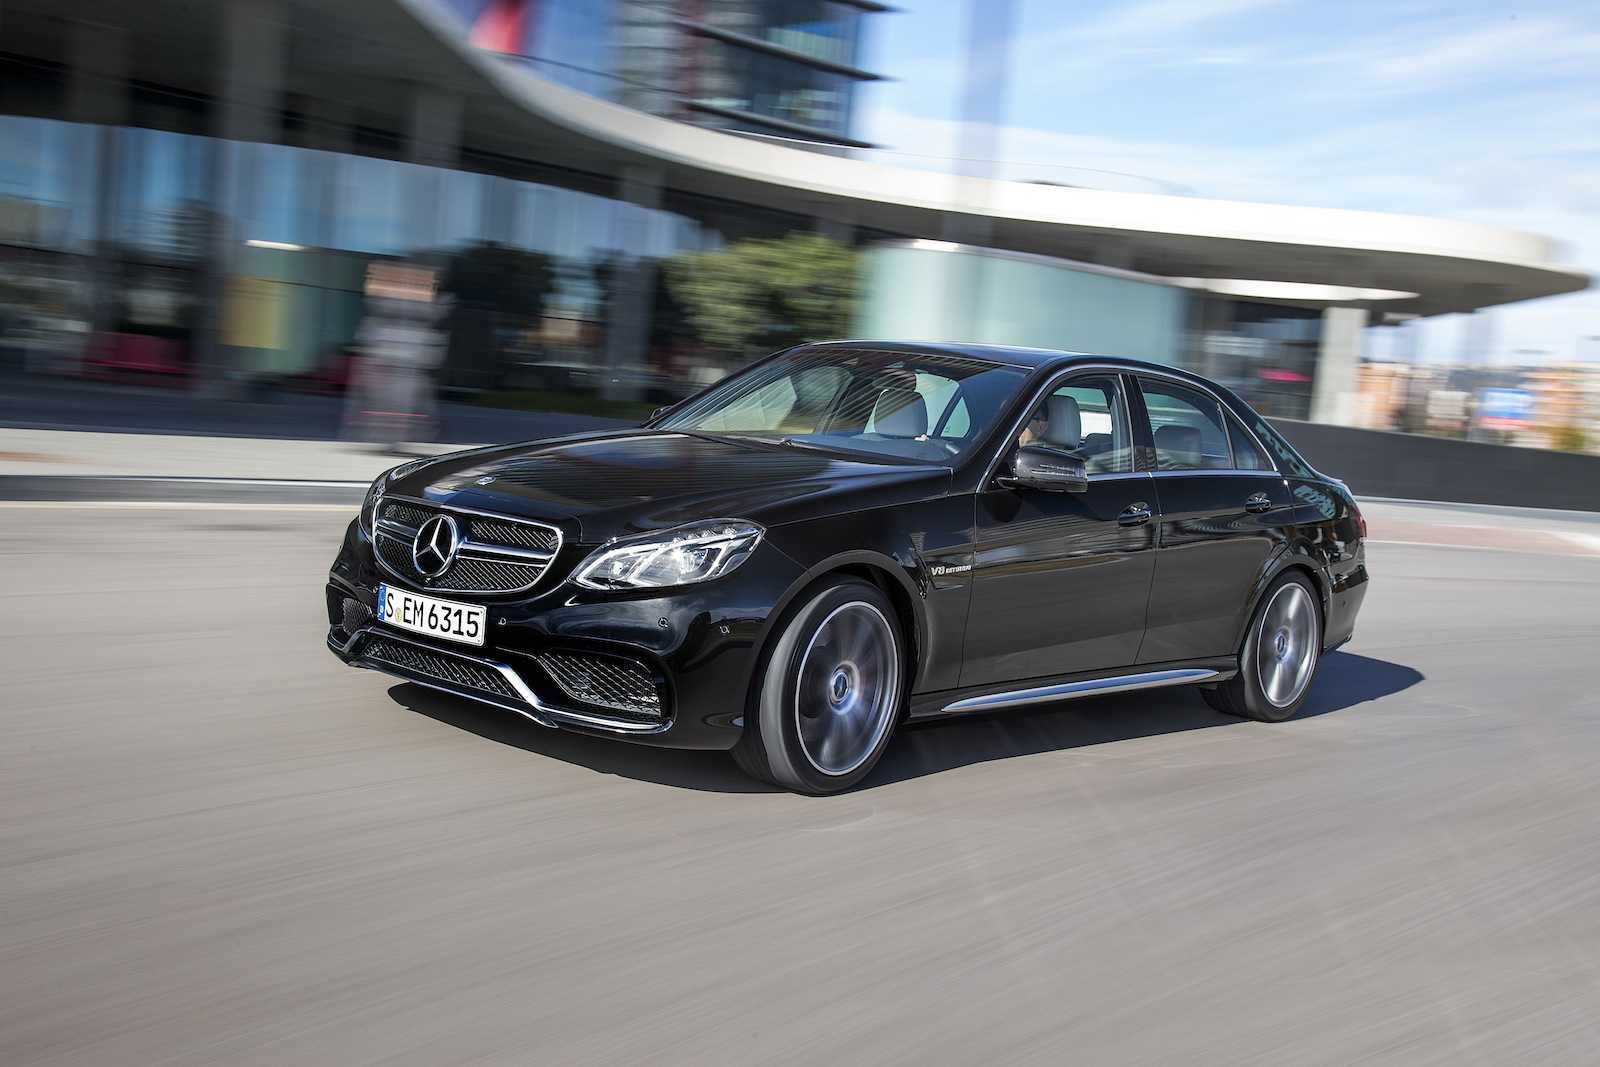 2013 mercedes benz e63 amg review caradvice. Black Bedroom Furniture Sets. Home Design Ideas